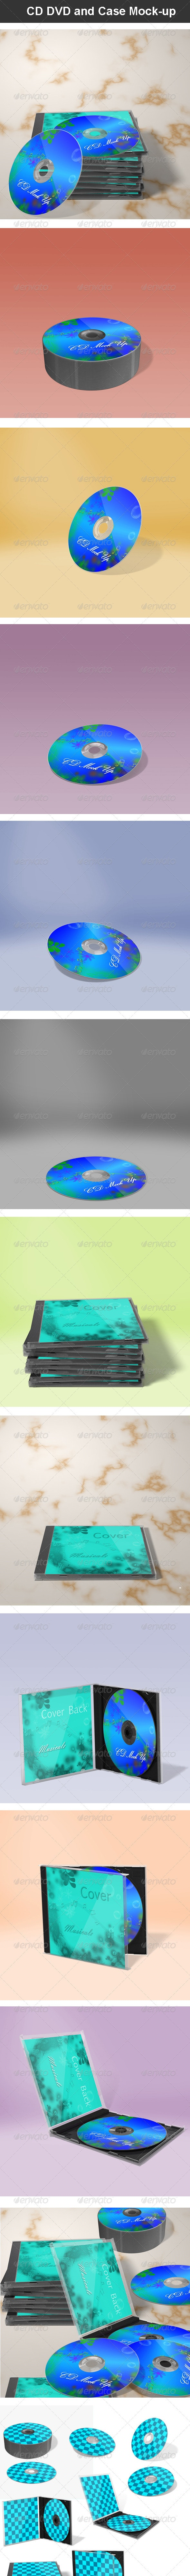 CD DVD and Case Mock-up - Packaging Product Mock-Ups